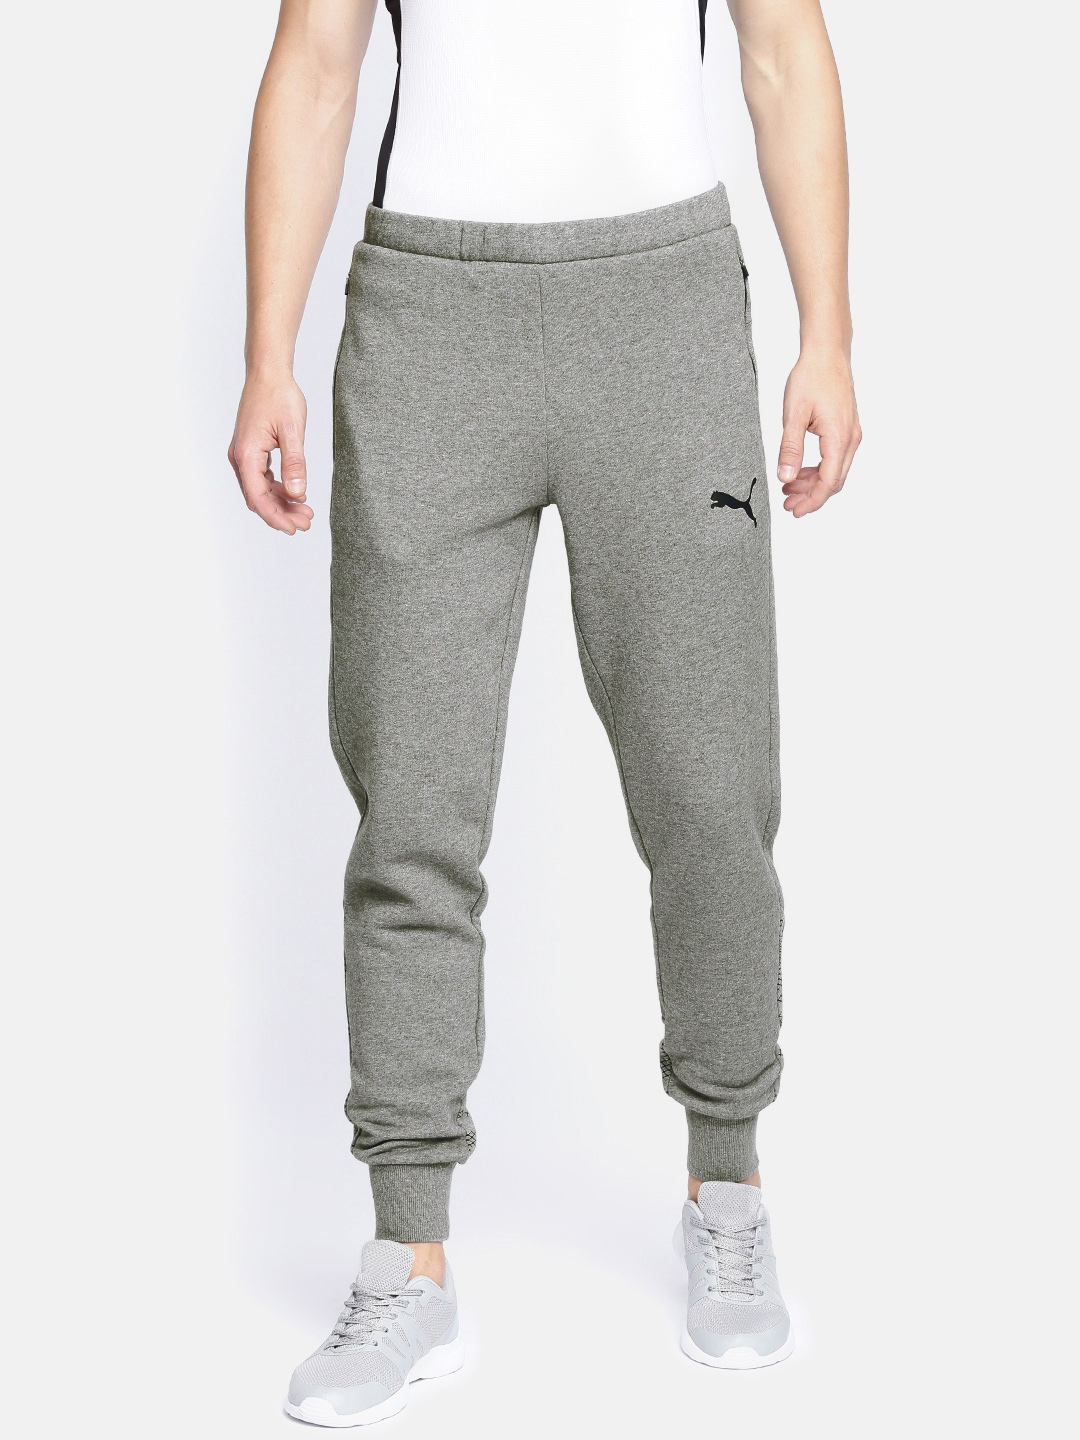 dd0865995265 Buy Puma Grey Modern Sports Pants Slim Fit Joggers - Track Pants for ...